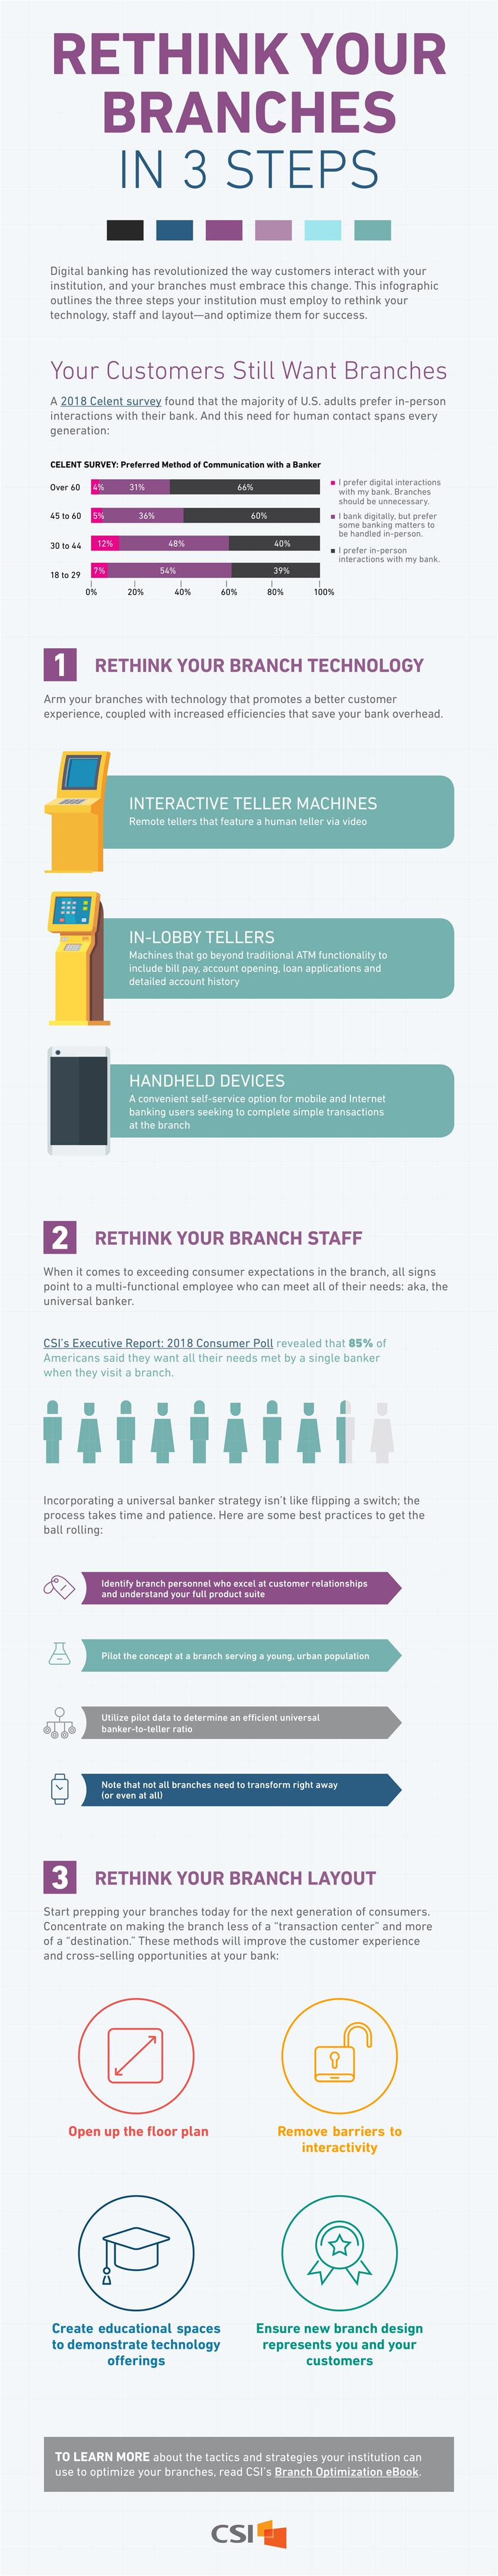 Infographic: Rethink Your Branches in 3 Steps